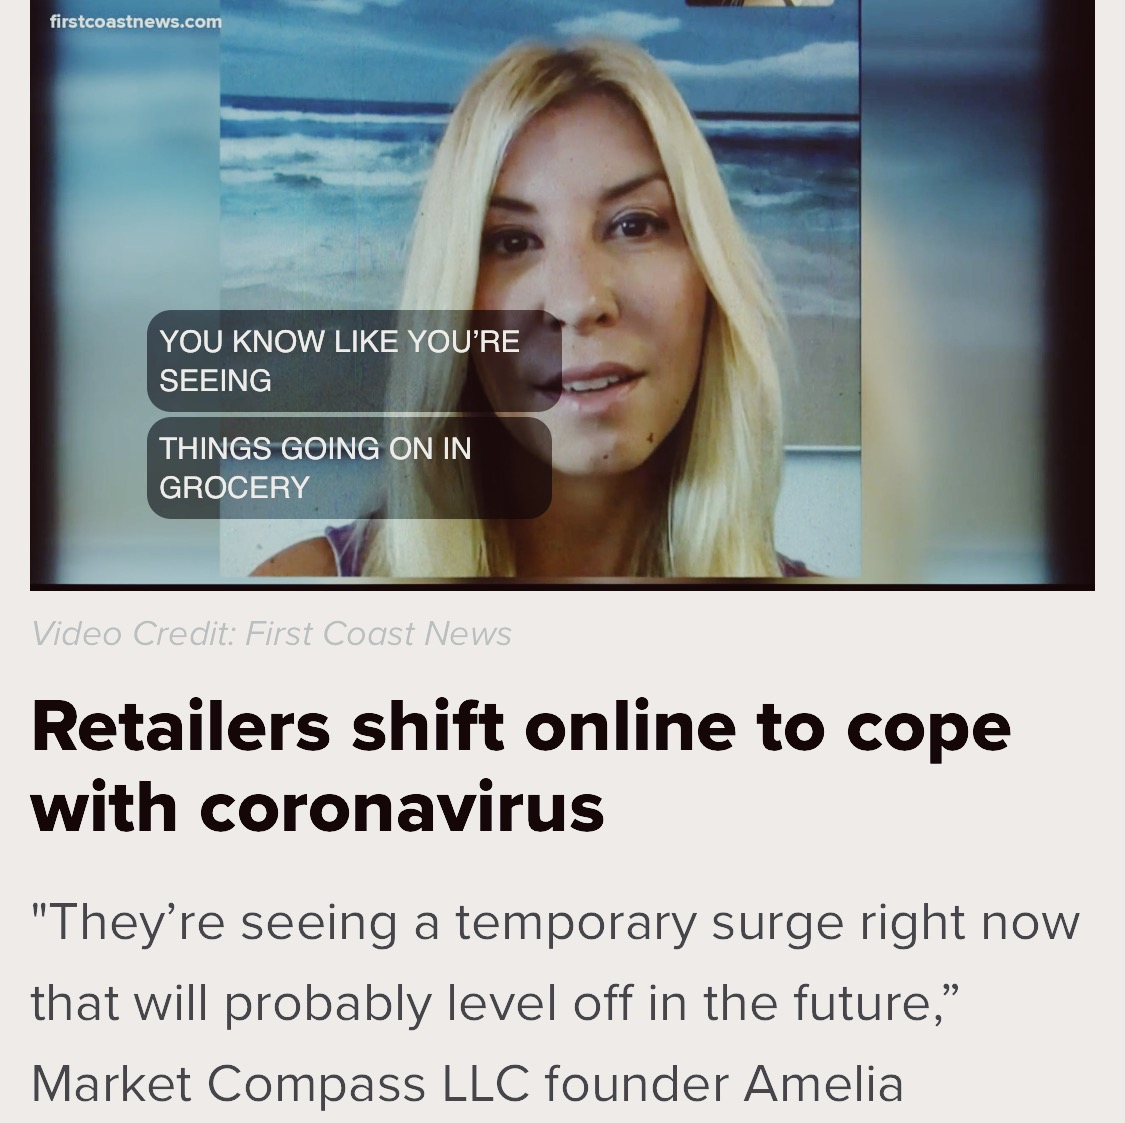 Coronavirus Impacting Retailers & Consumers: First Coast News, 18 Mar 2020